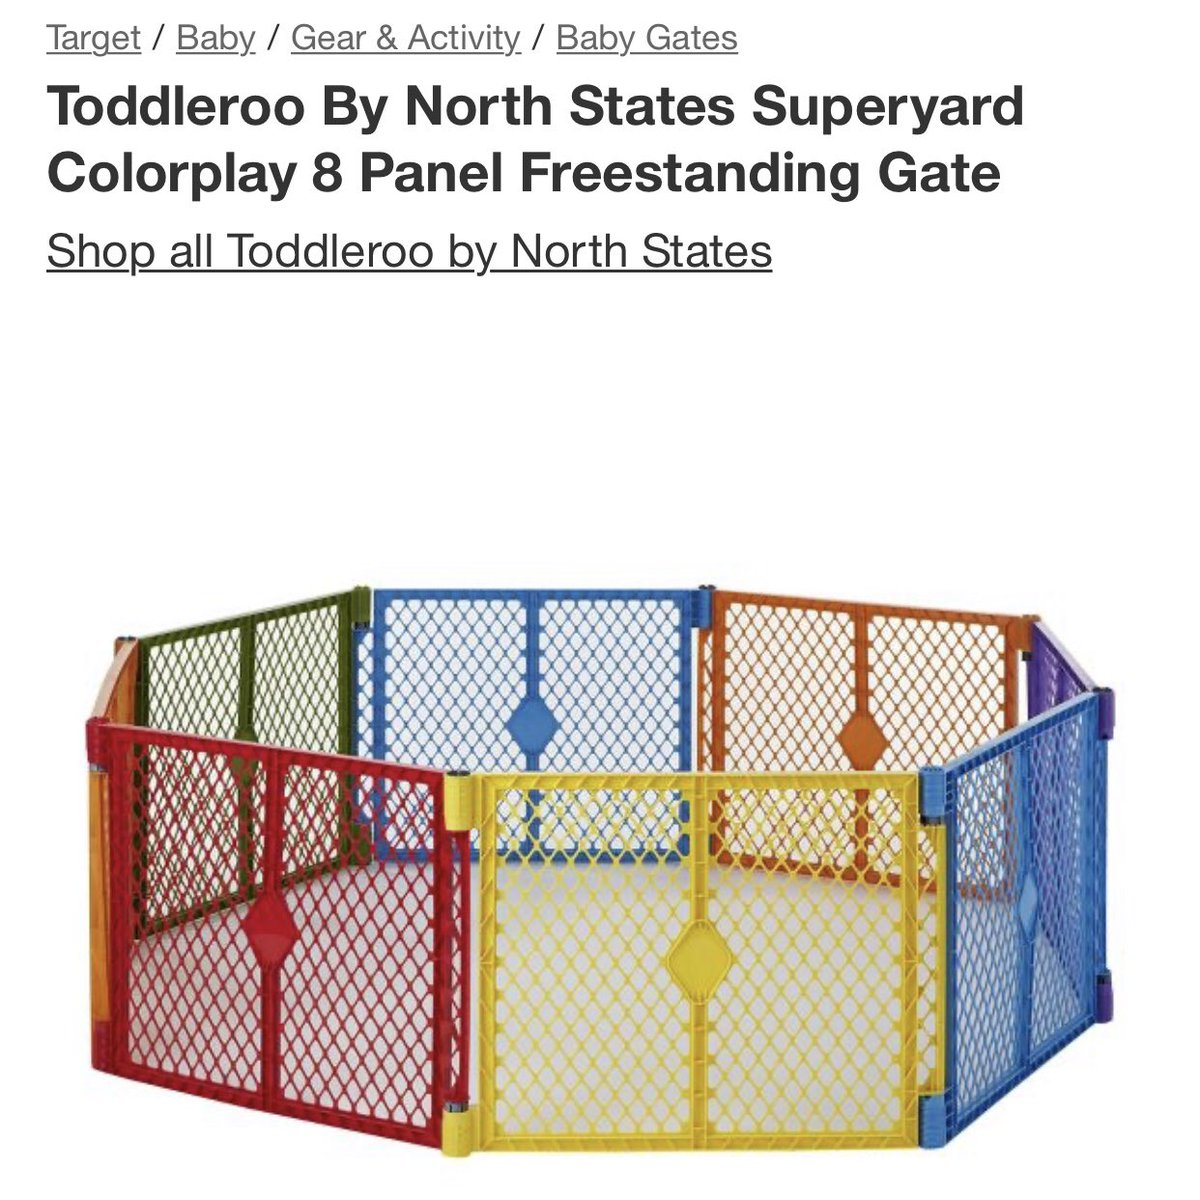 """Toddleroo."" Designed to keep the toddler inside. What does this remind me of..."